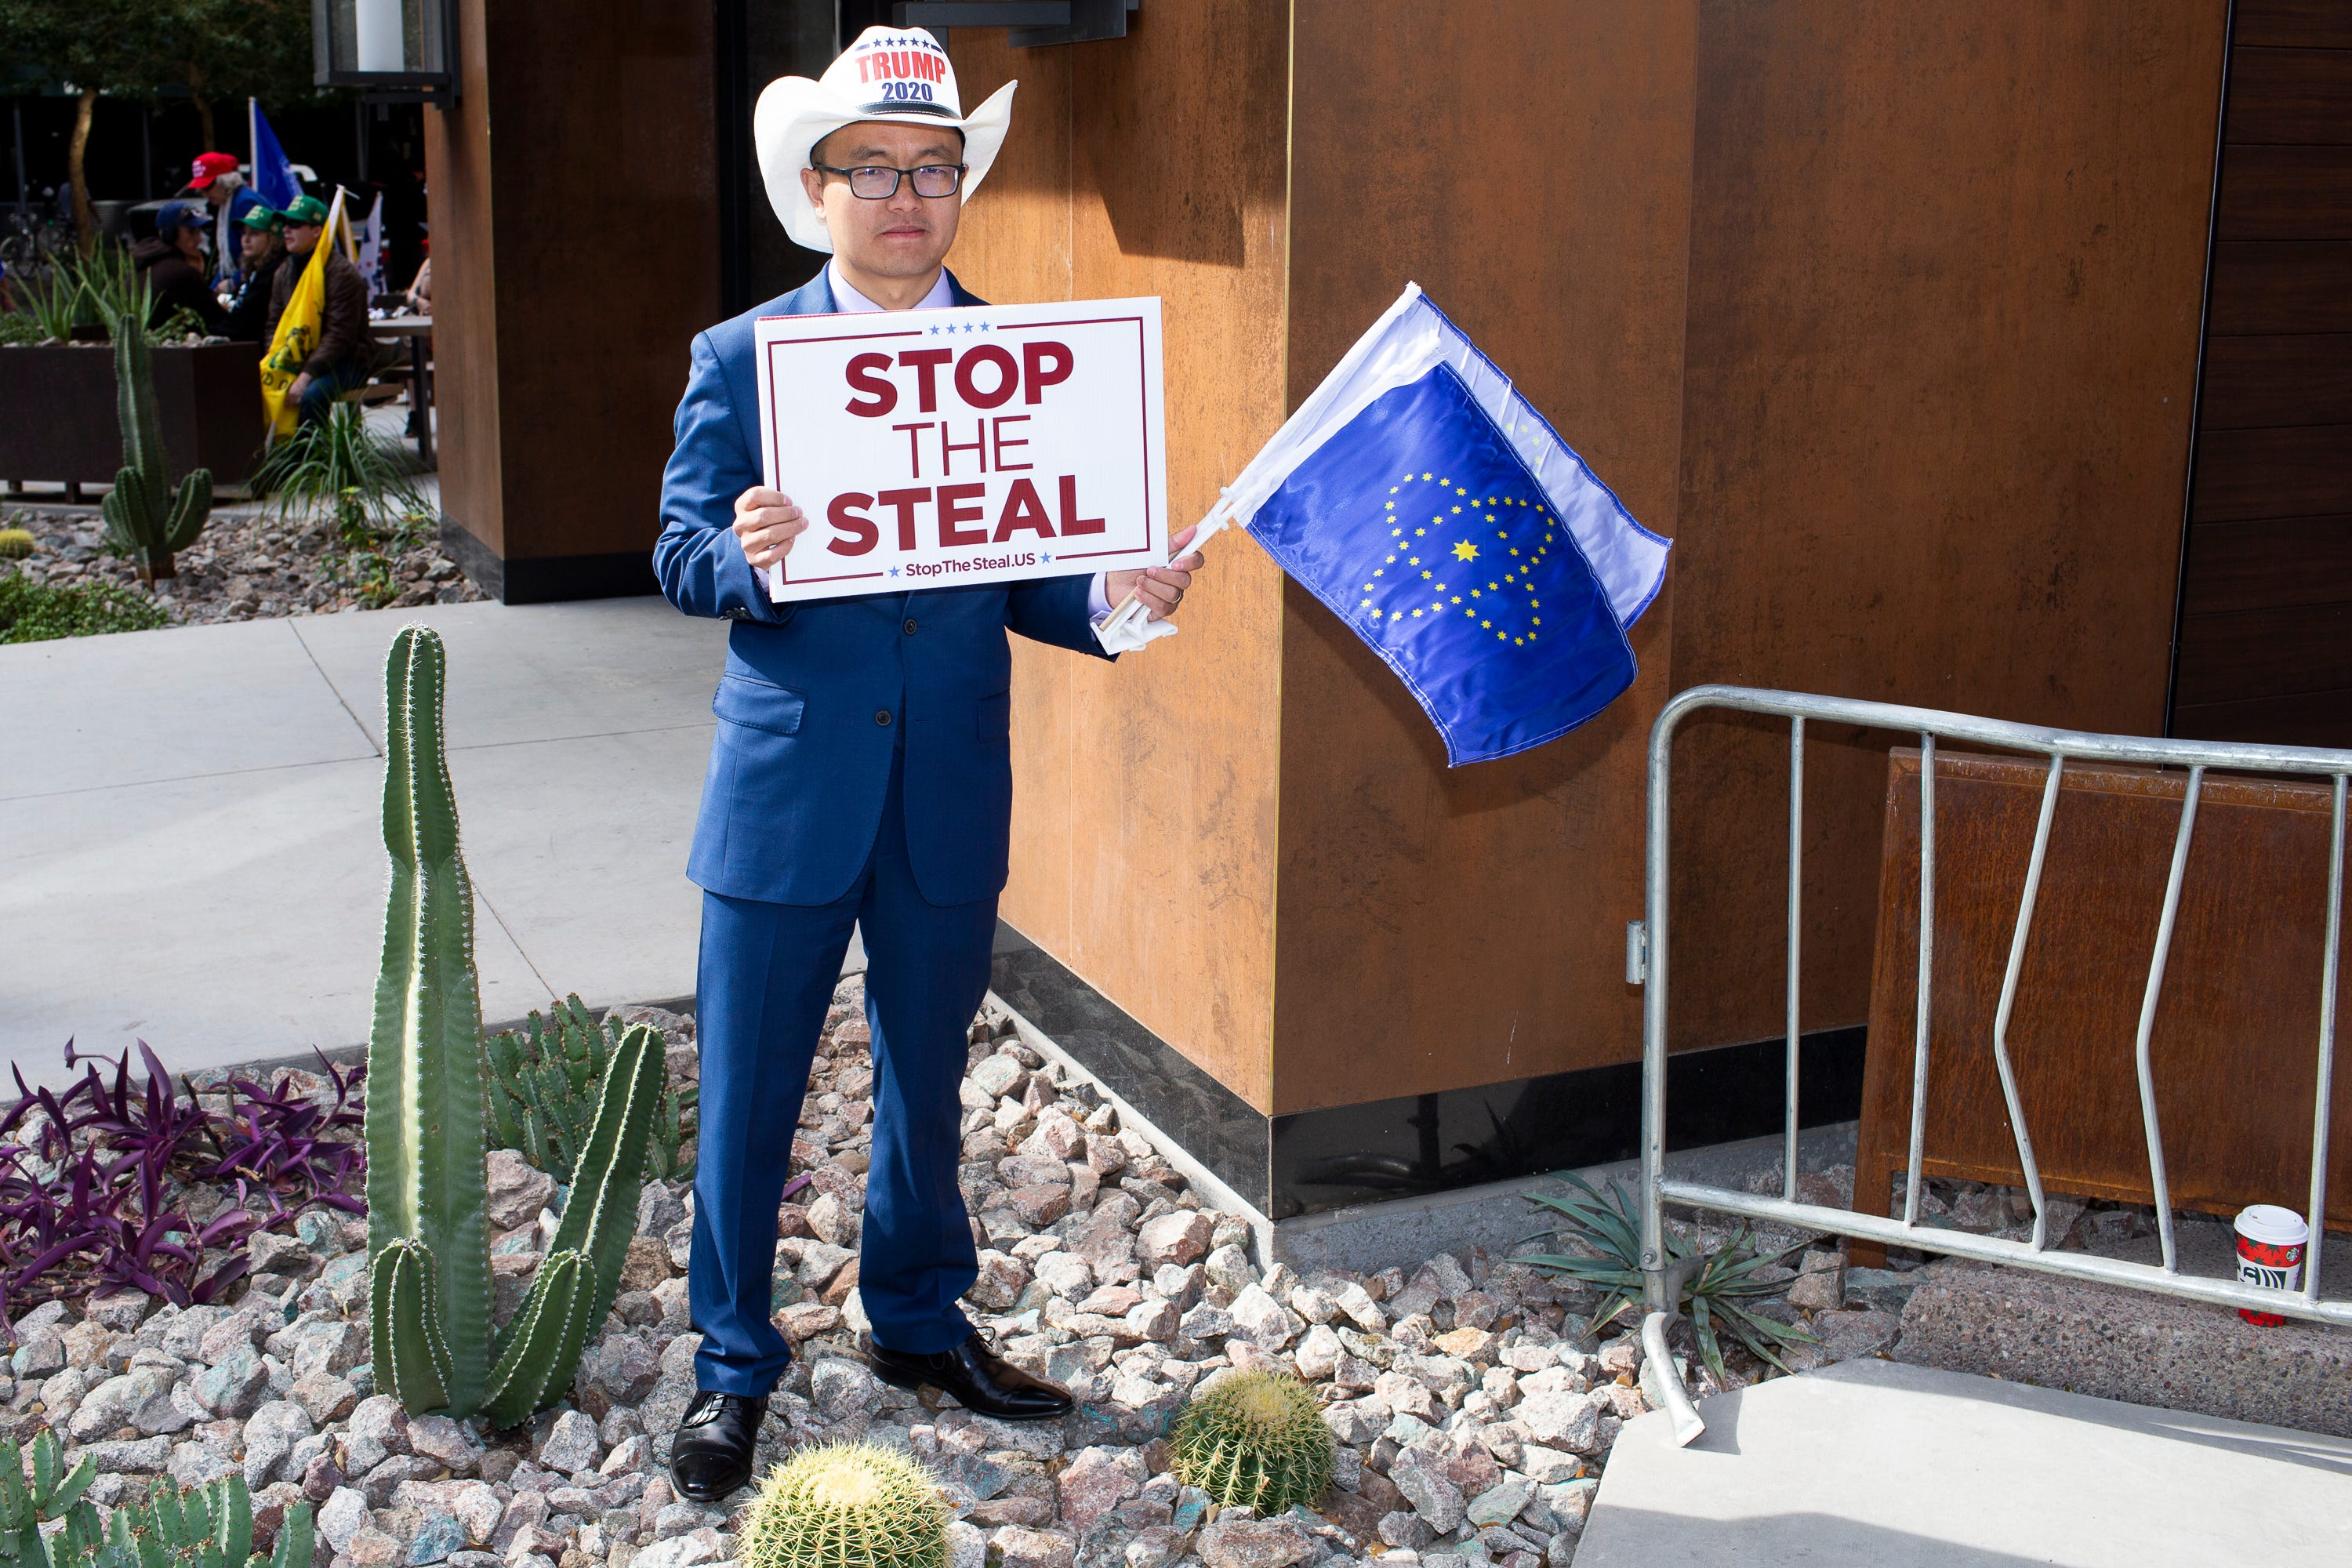 James Wang, a supporter of President Donald Trump, rallies with fellow protesters disputing President Trump's defeat in the 2020 election, citing election fraud and other concerns, outside of the Hyatt Regency Hotel in Phoenix, Arizona on Nov. 30, 2020. President Trump's attorney Rudy Giuliani held a public meeting down the street at the Hyatt Regency Hotel with state legislators and others to discuss their concerns regarding the 2020 US Presidential election.Rudy Giuliani Phoenix Stop The Steal Nov 30